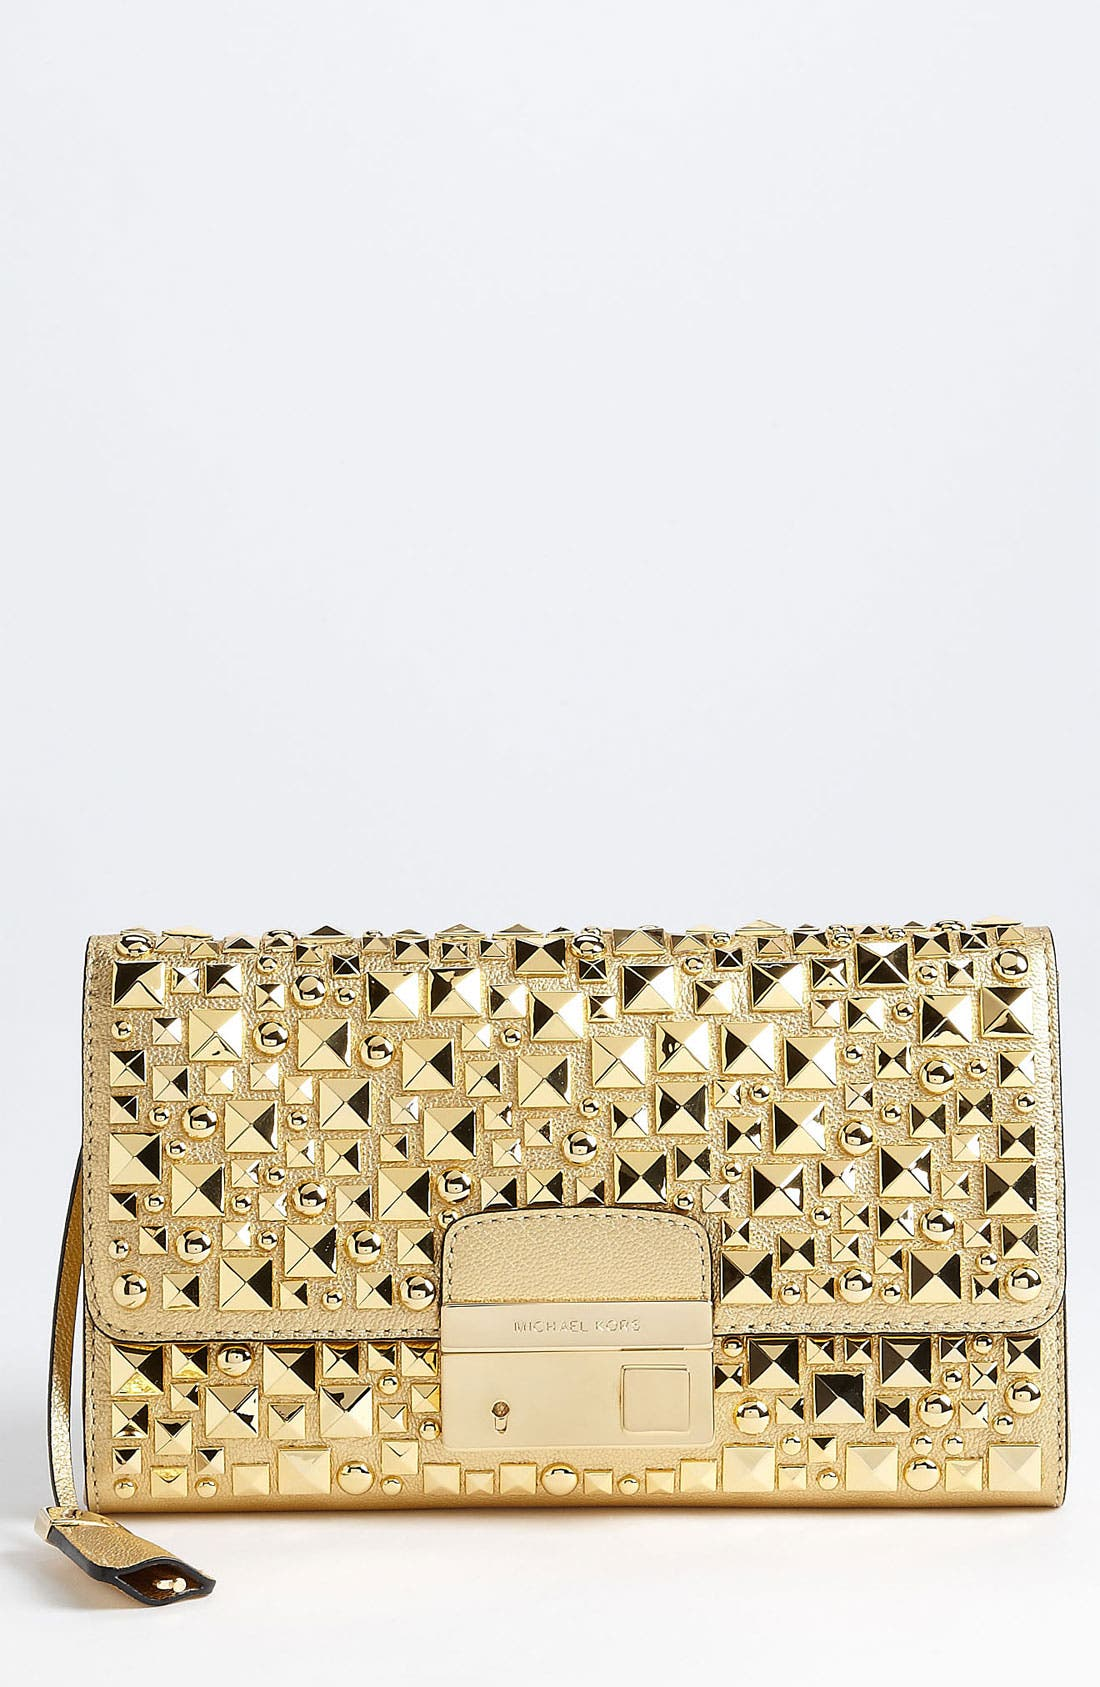 Main Image - Michael Kors 'Gia' Studded Leather Clutch